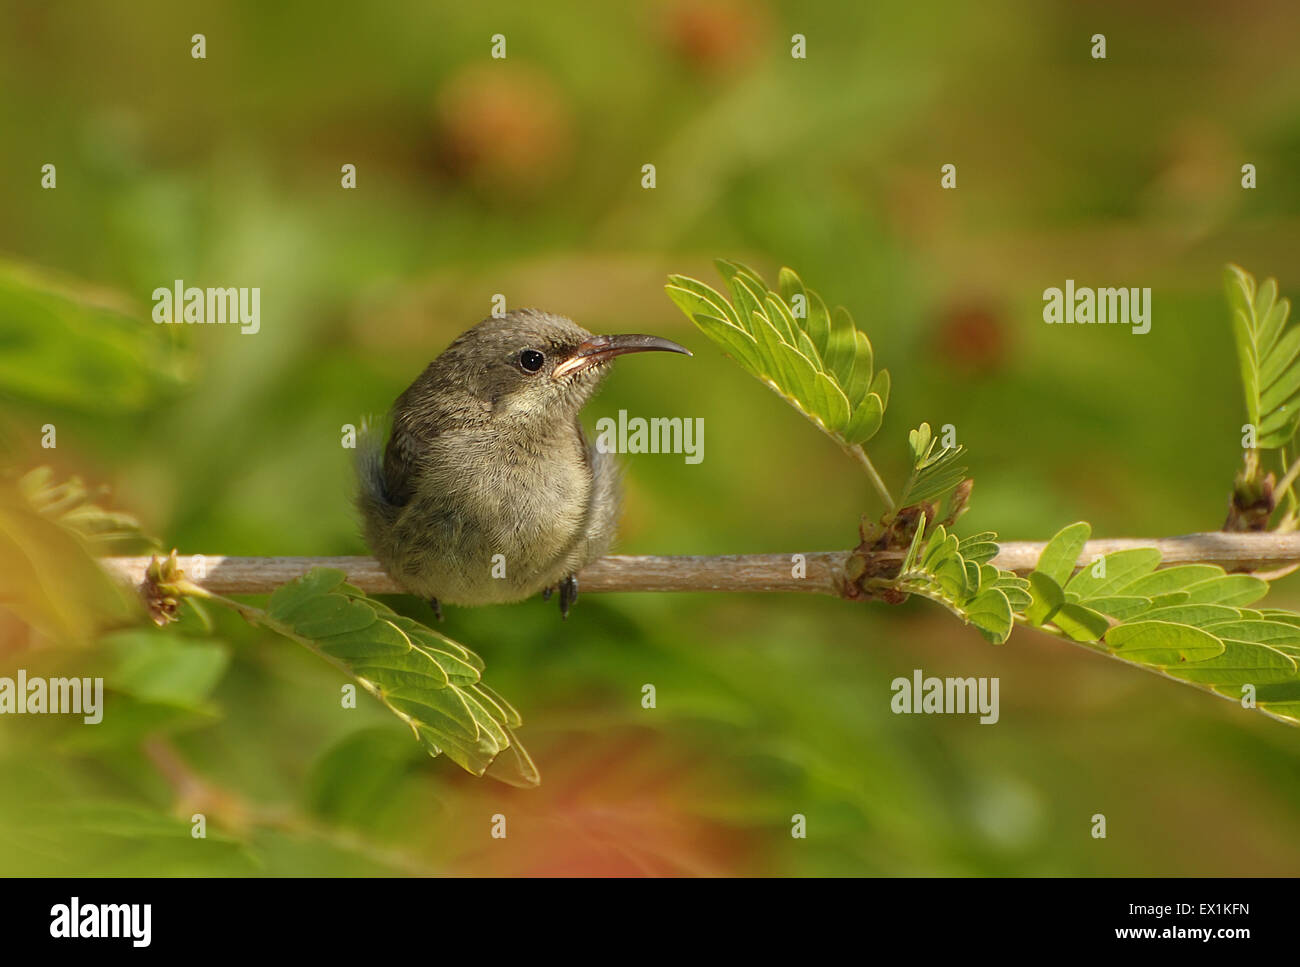 Young fledged Sunbird chick - Stock Image